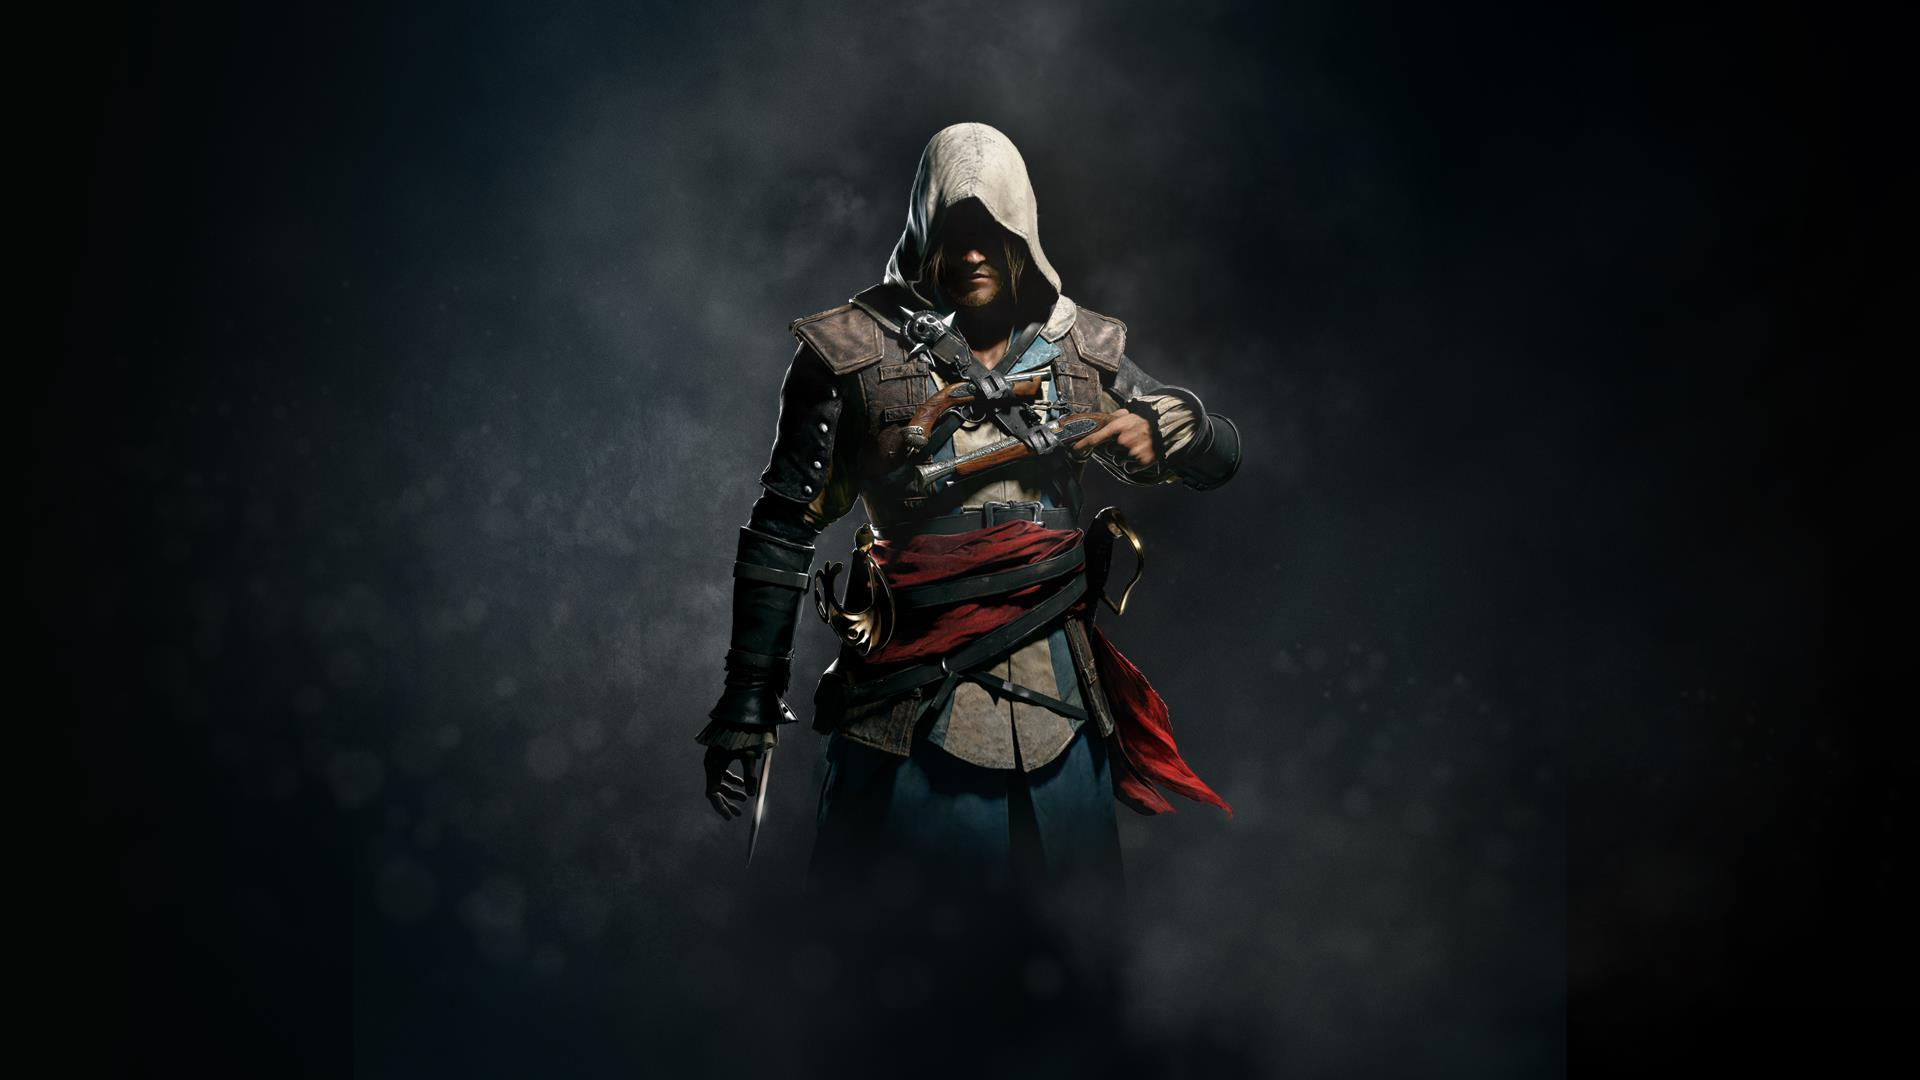 Master of the Caribbean in Assassin's Creed IV: Black Flag